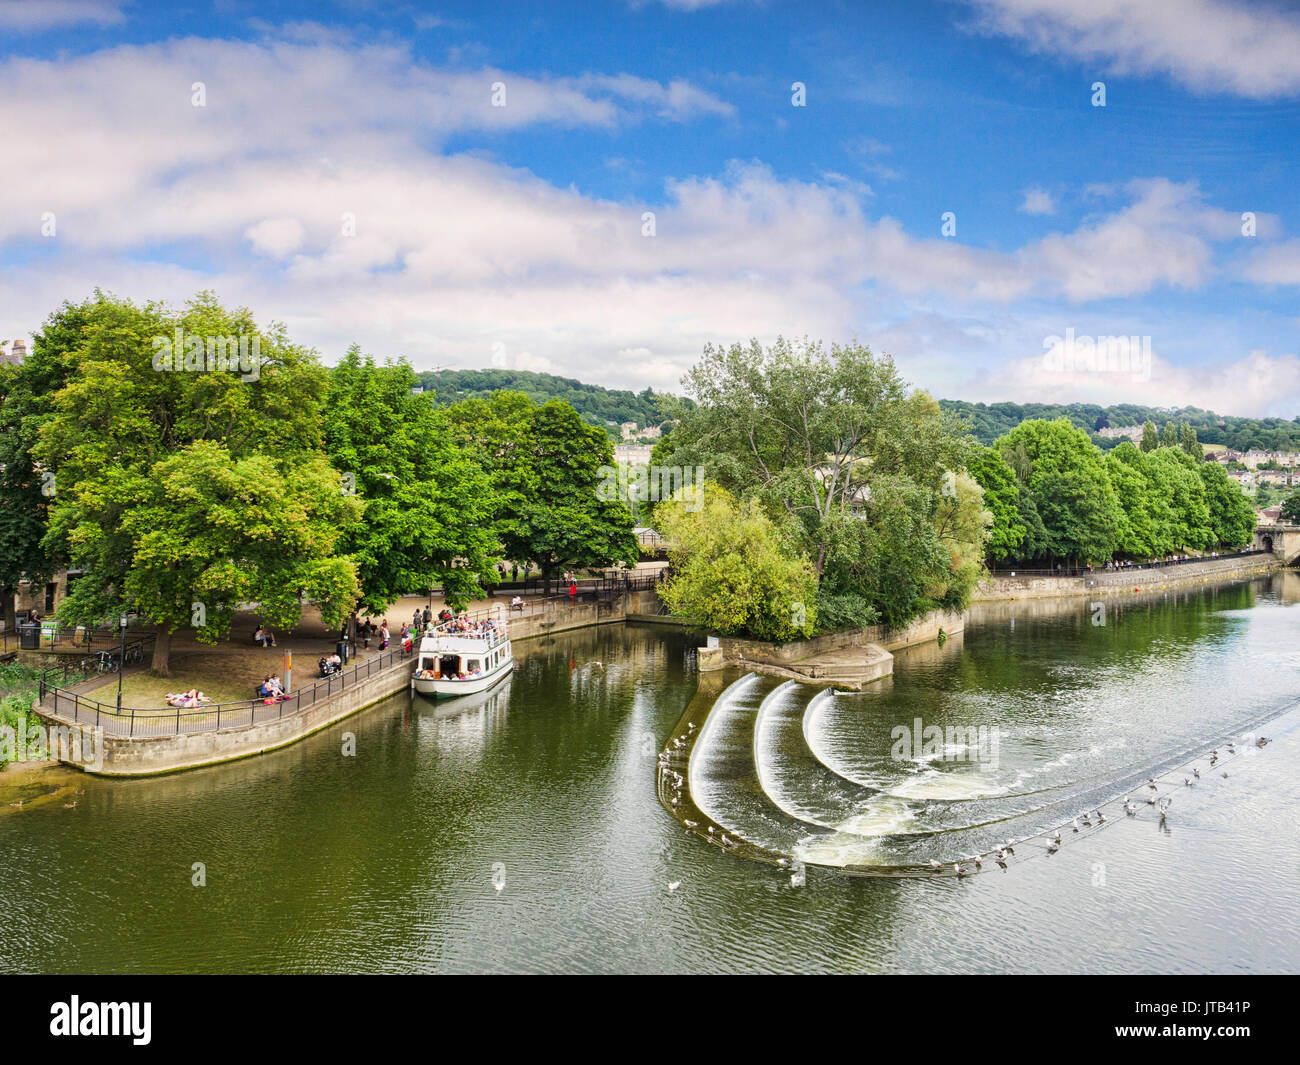 8 July 2017: Bath, Somerset, England, UK - Pulteney Weir, one of the attractions of the city, and a pleasure boat moored nearby. - Stock Image